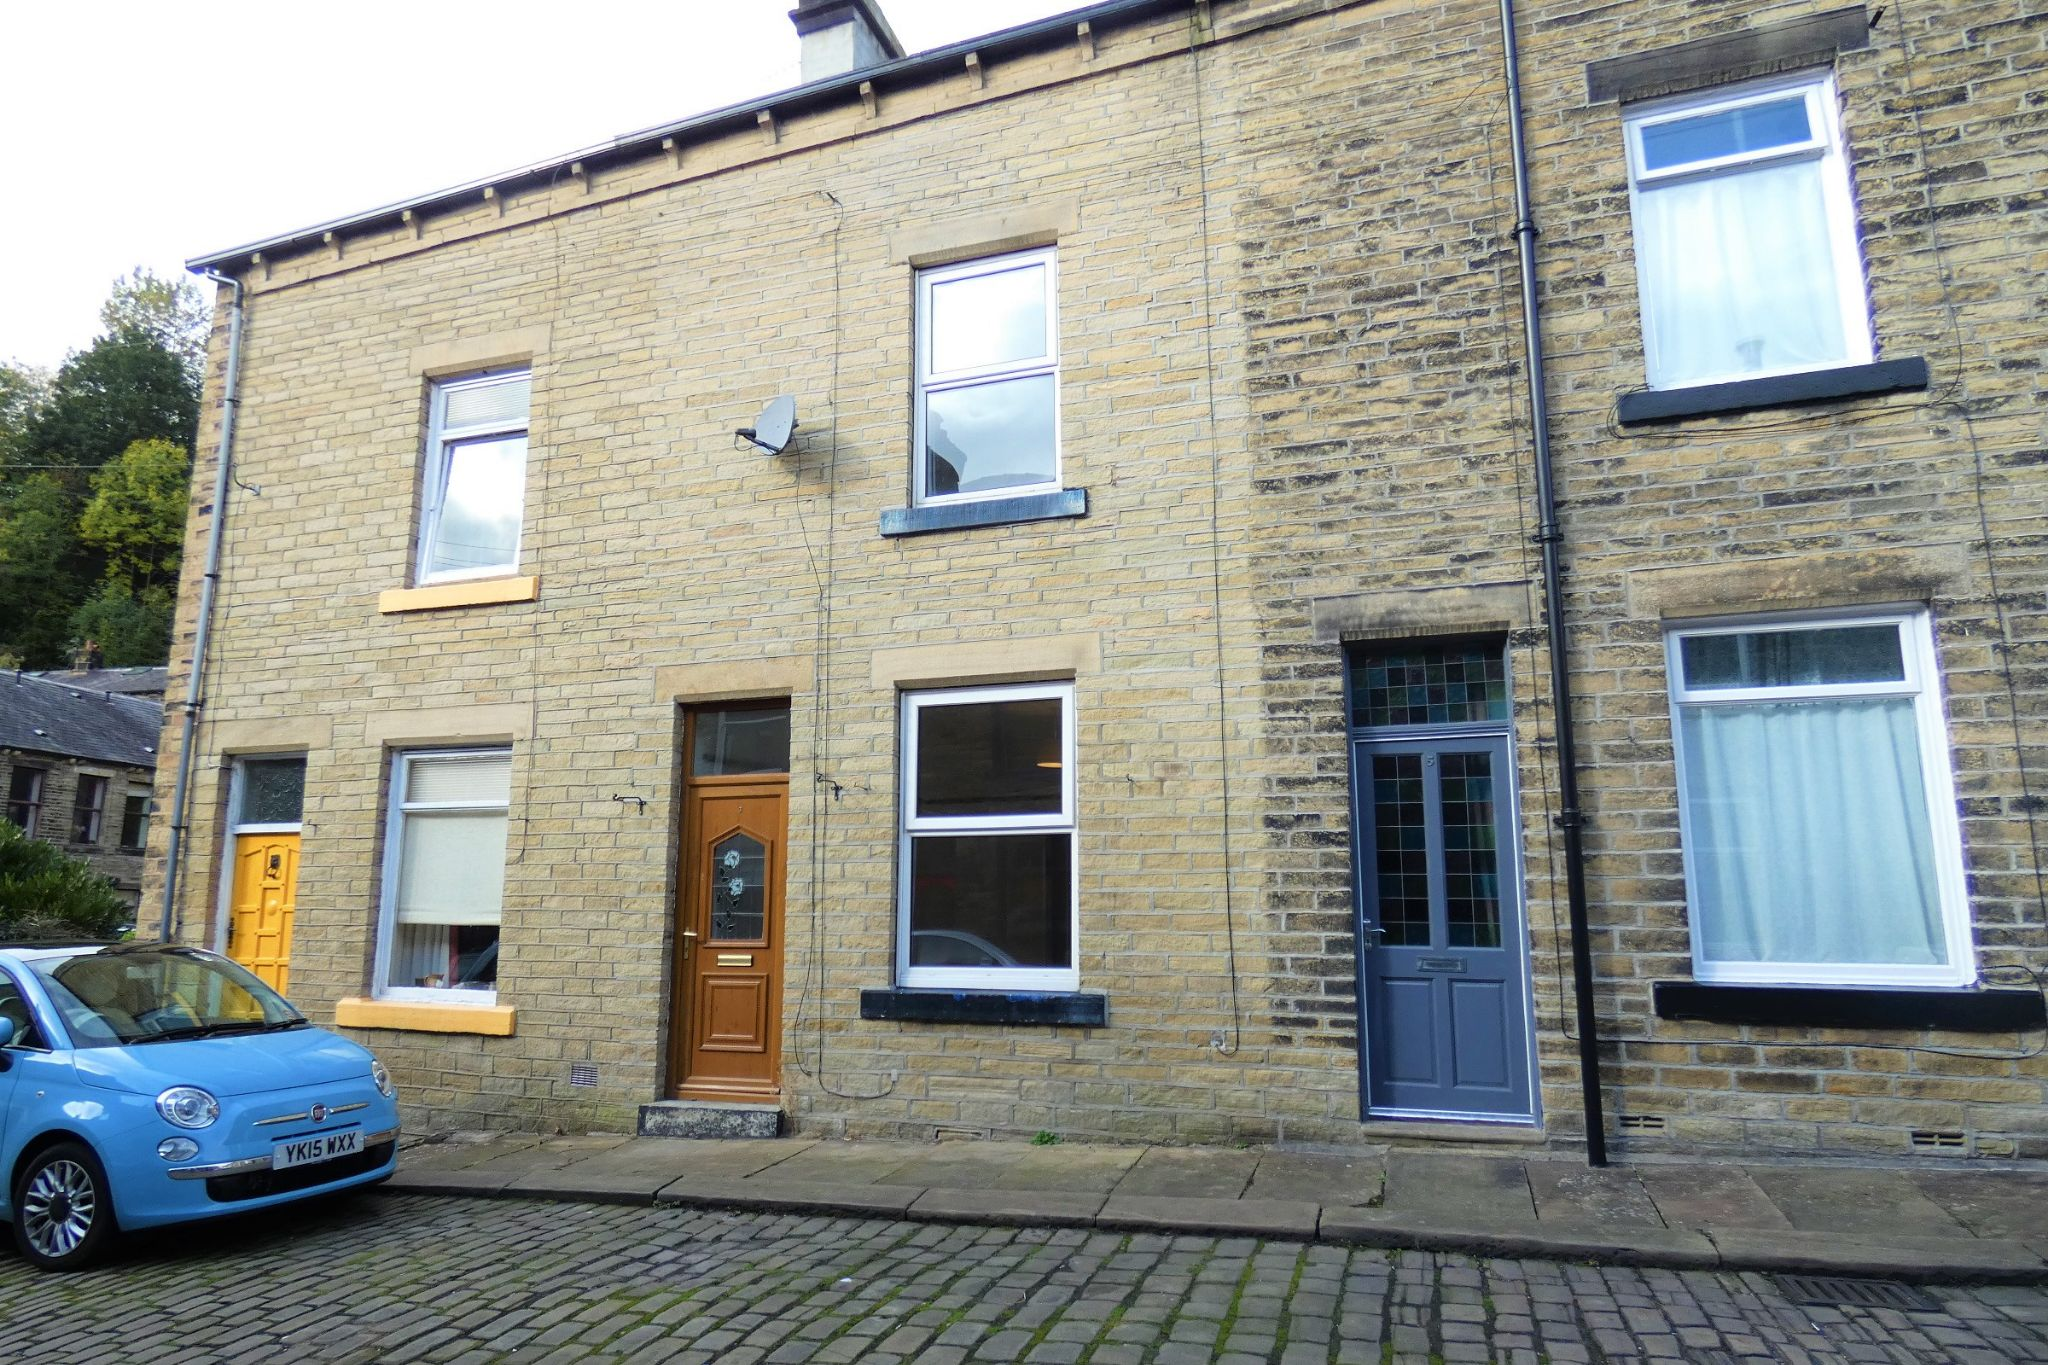 3 bedroom mid terraced house Let Agreed in Hebden Bridge - Property photograph